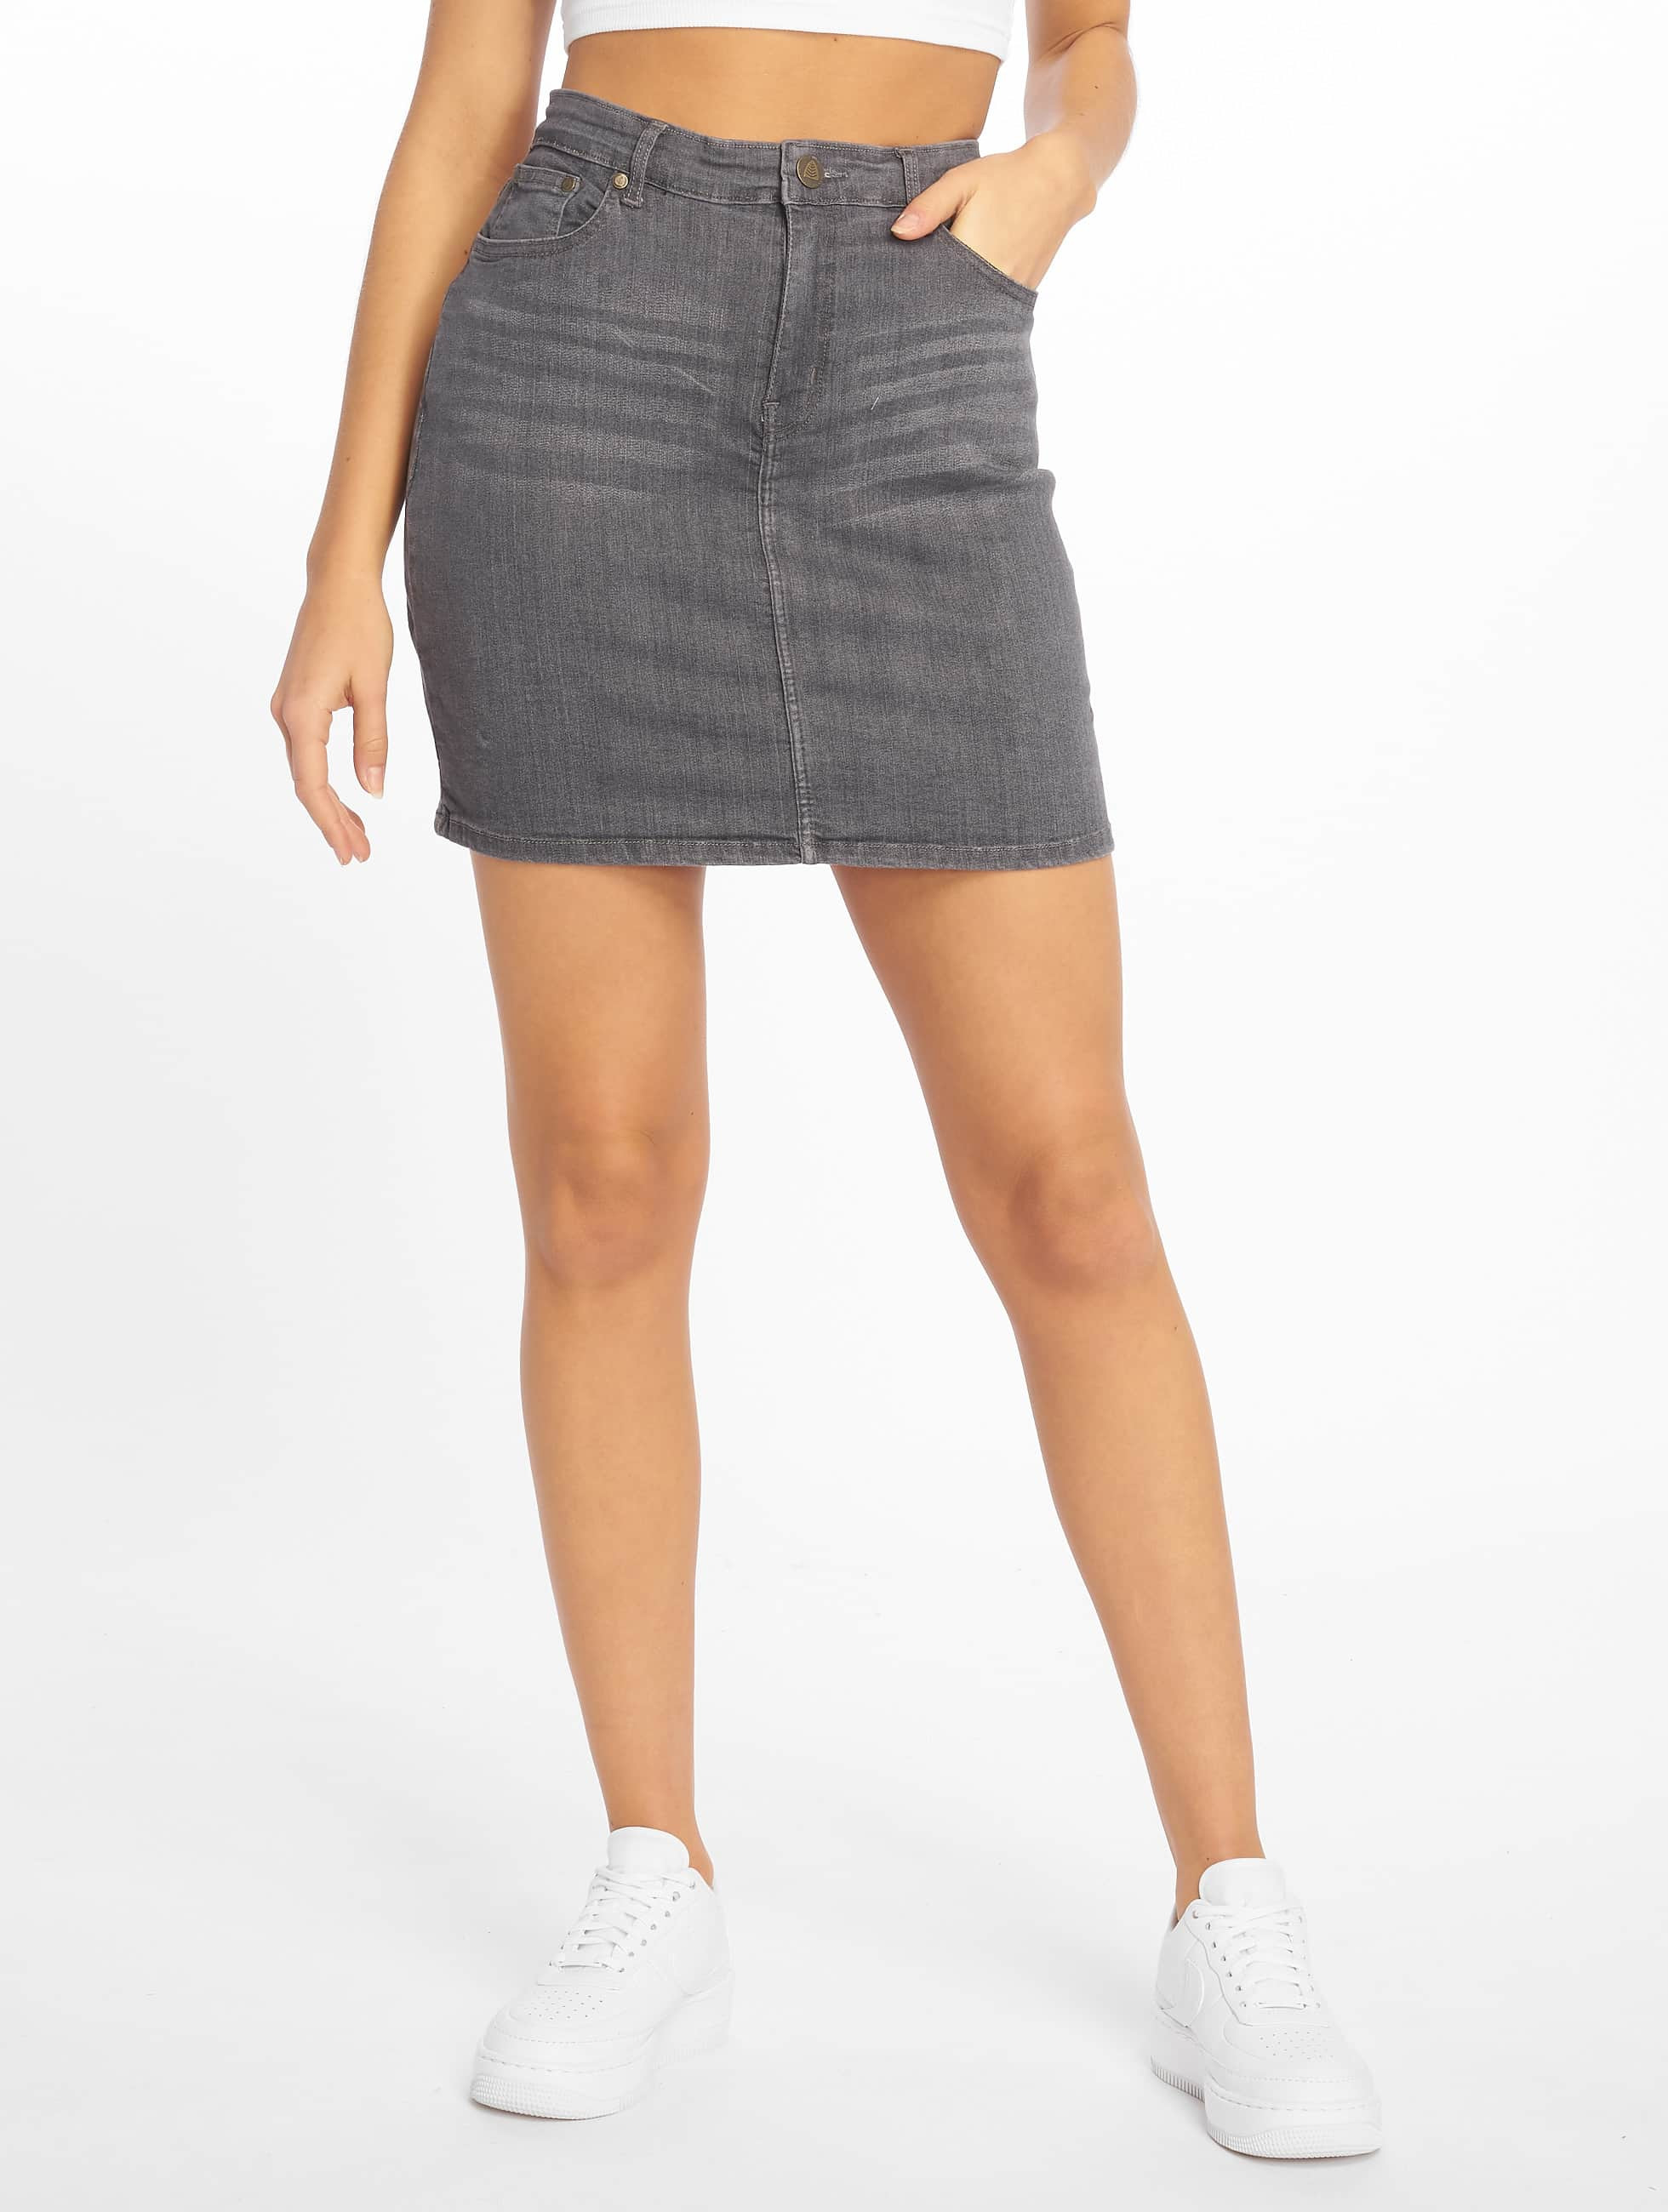 Just Rhyse / Skirt Roseville in grey M